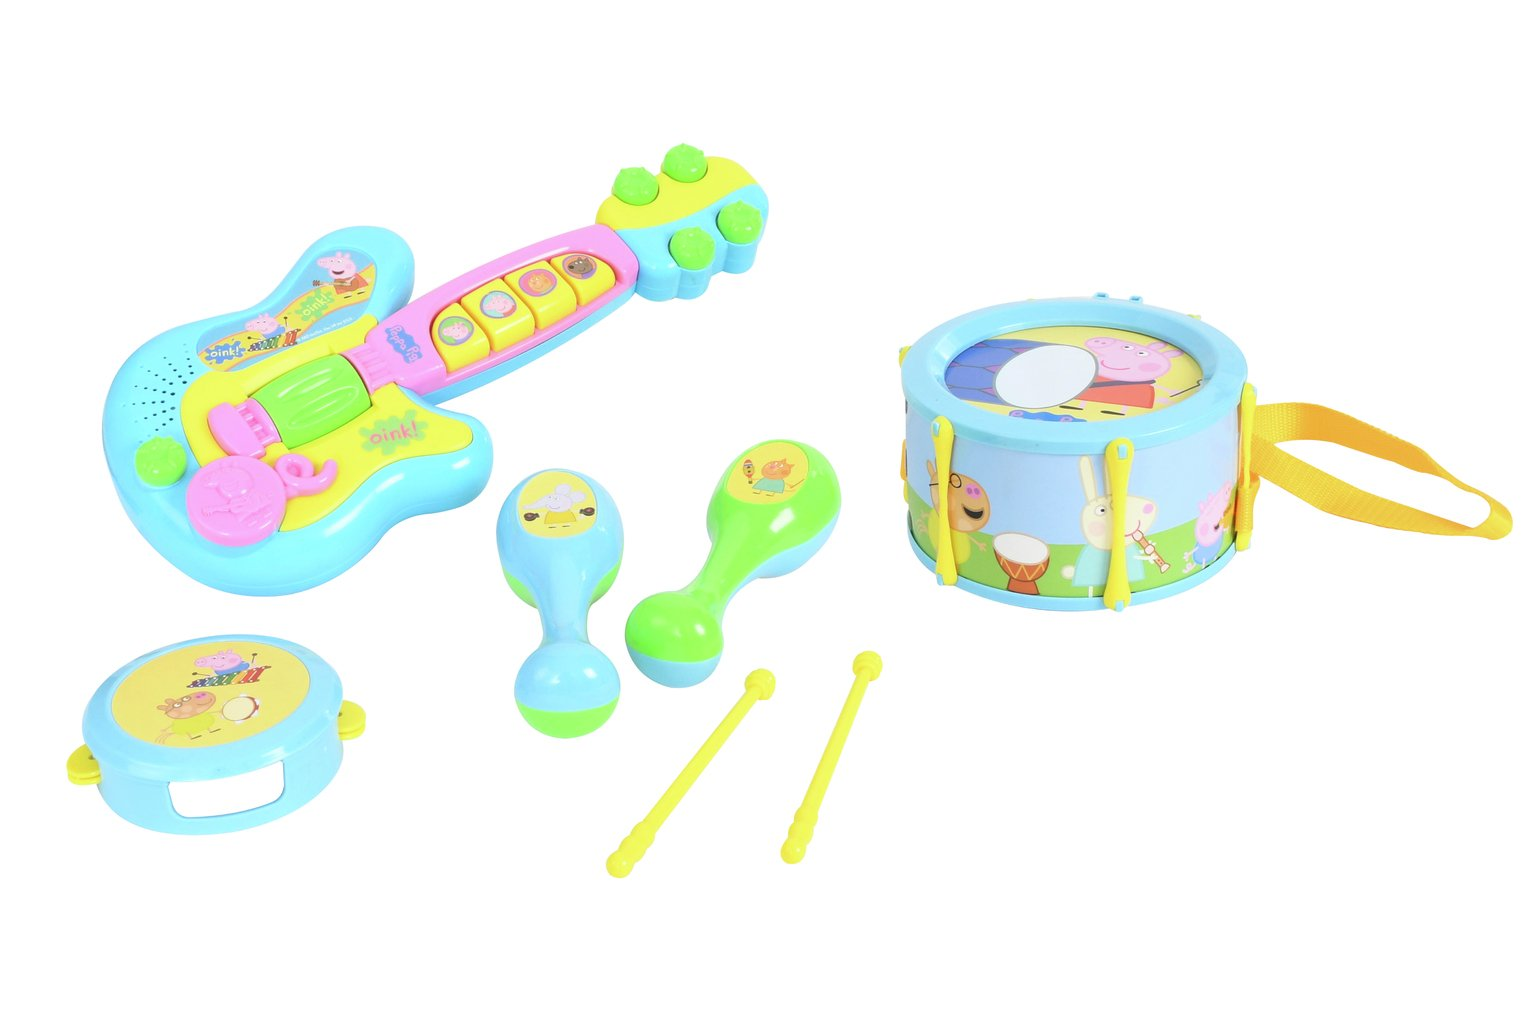 Peppa Pig Electric Band Set